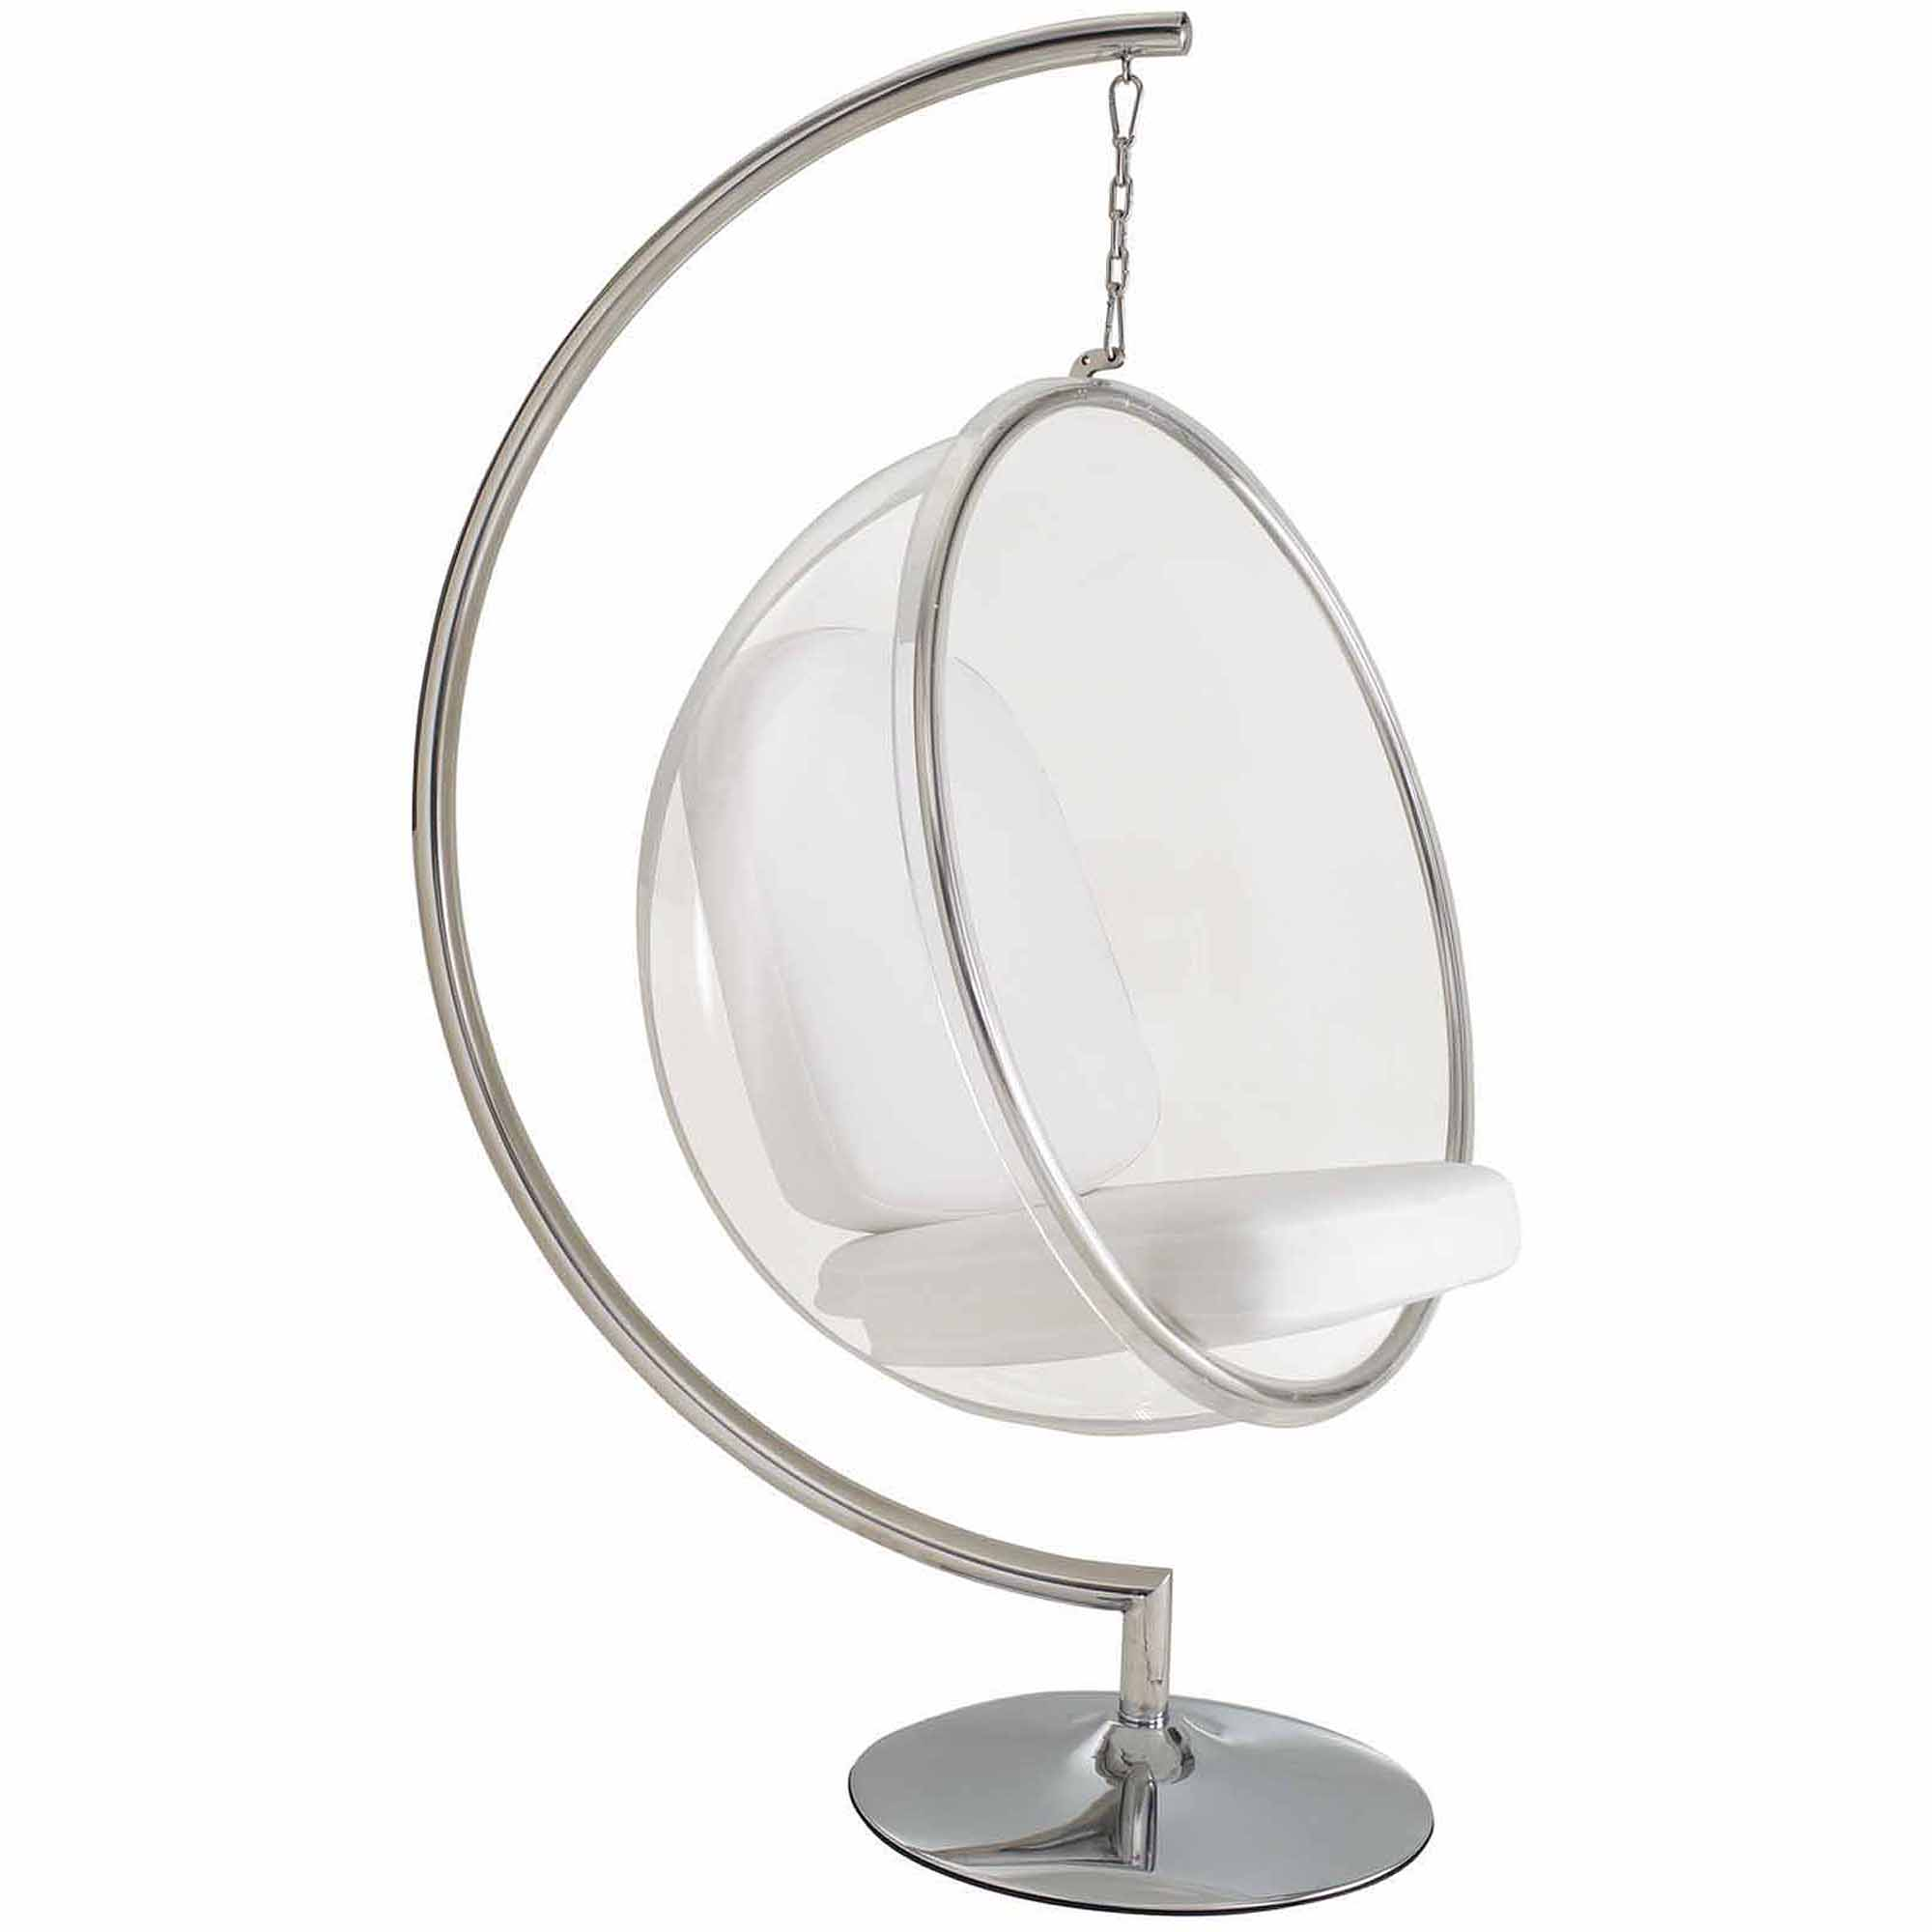 Modway Ring Lounge Acrylic Chair With Steel Rim, Multiple Colors    Walmart.com